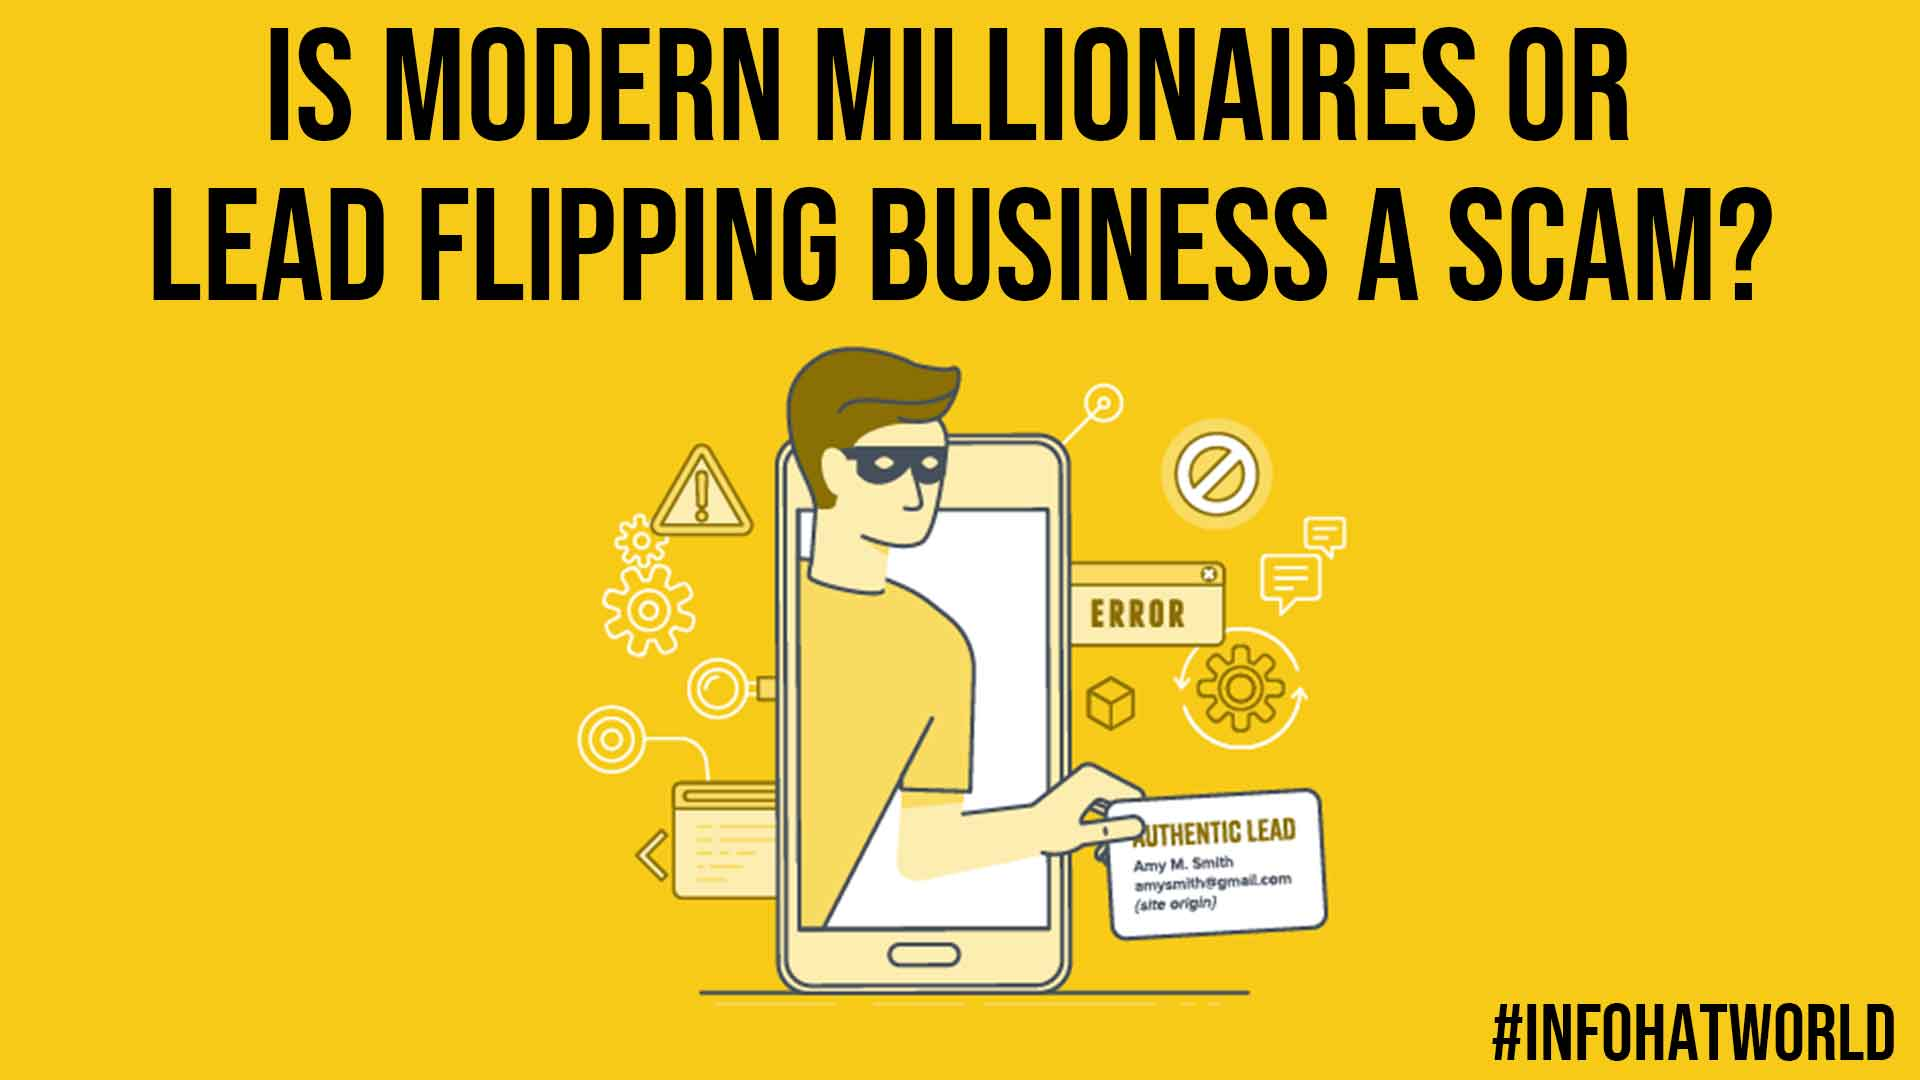 Is Modern Millionaires or Lead Flipping Business a Scam